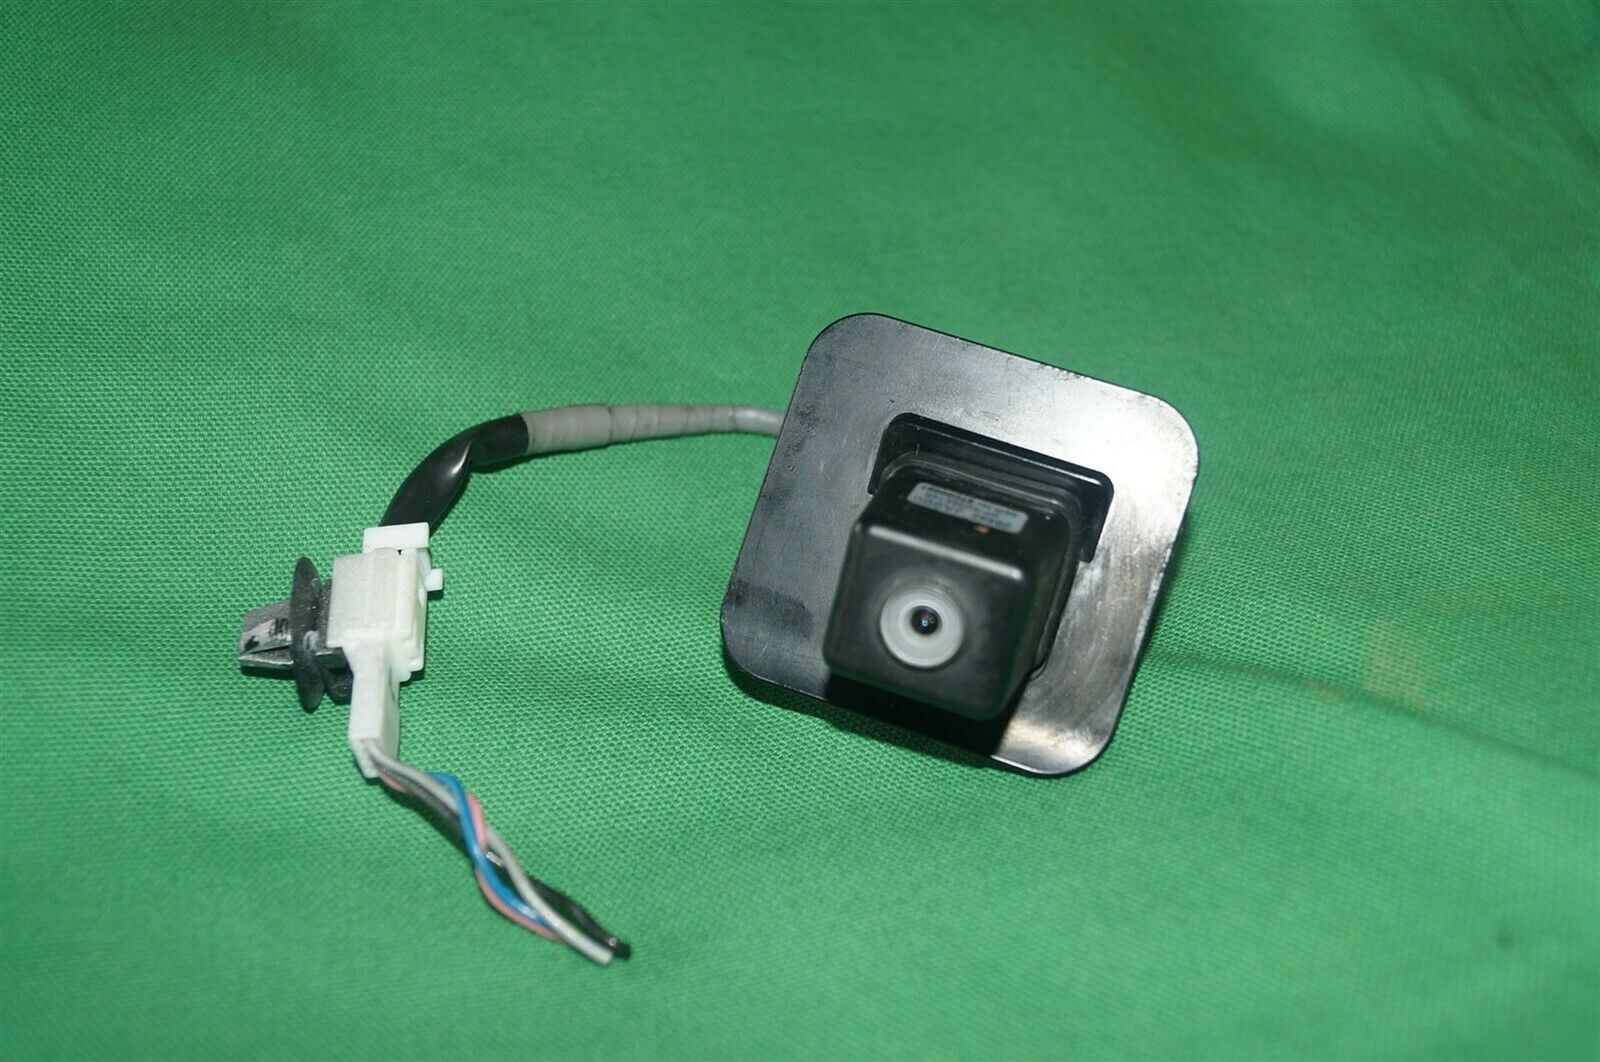 10-12 Nissan Altima Rear Trunk Backup Reverse Camera 28442-JA000